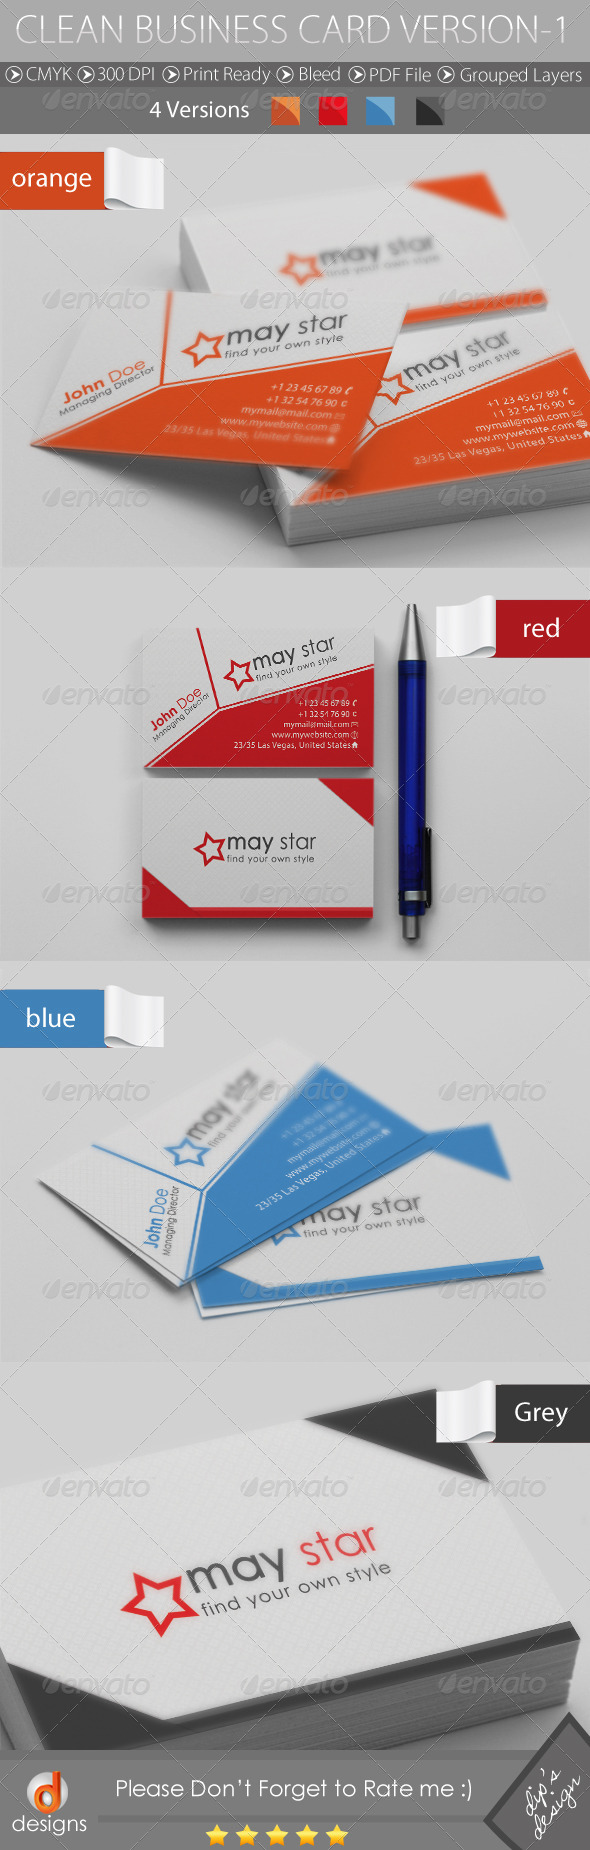 Clean Business Card Version-1 - Corporate Business Cards